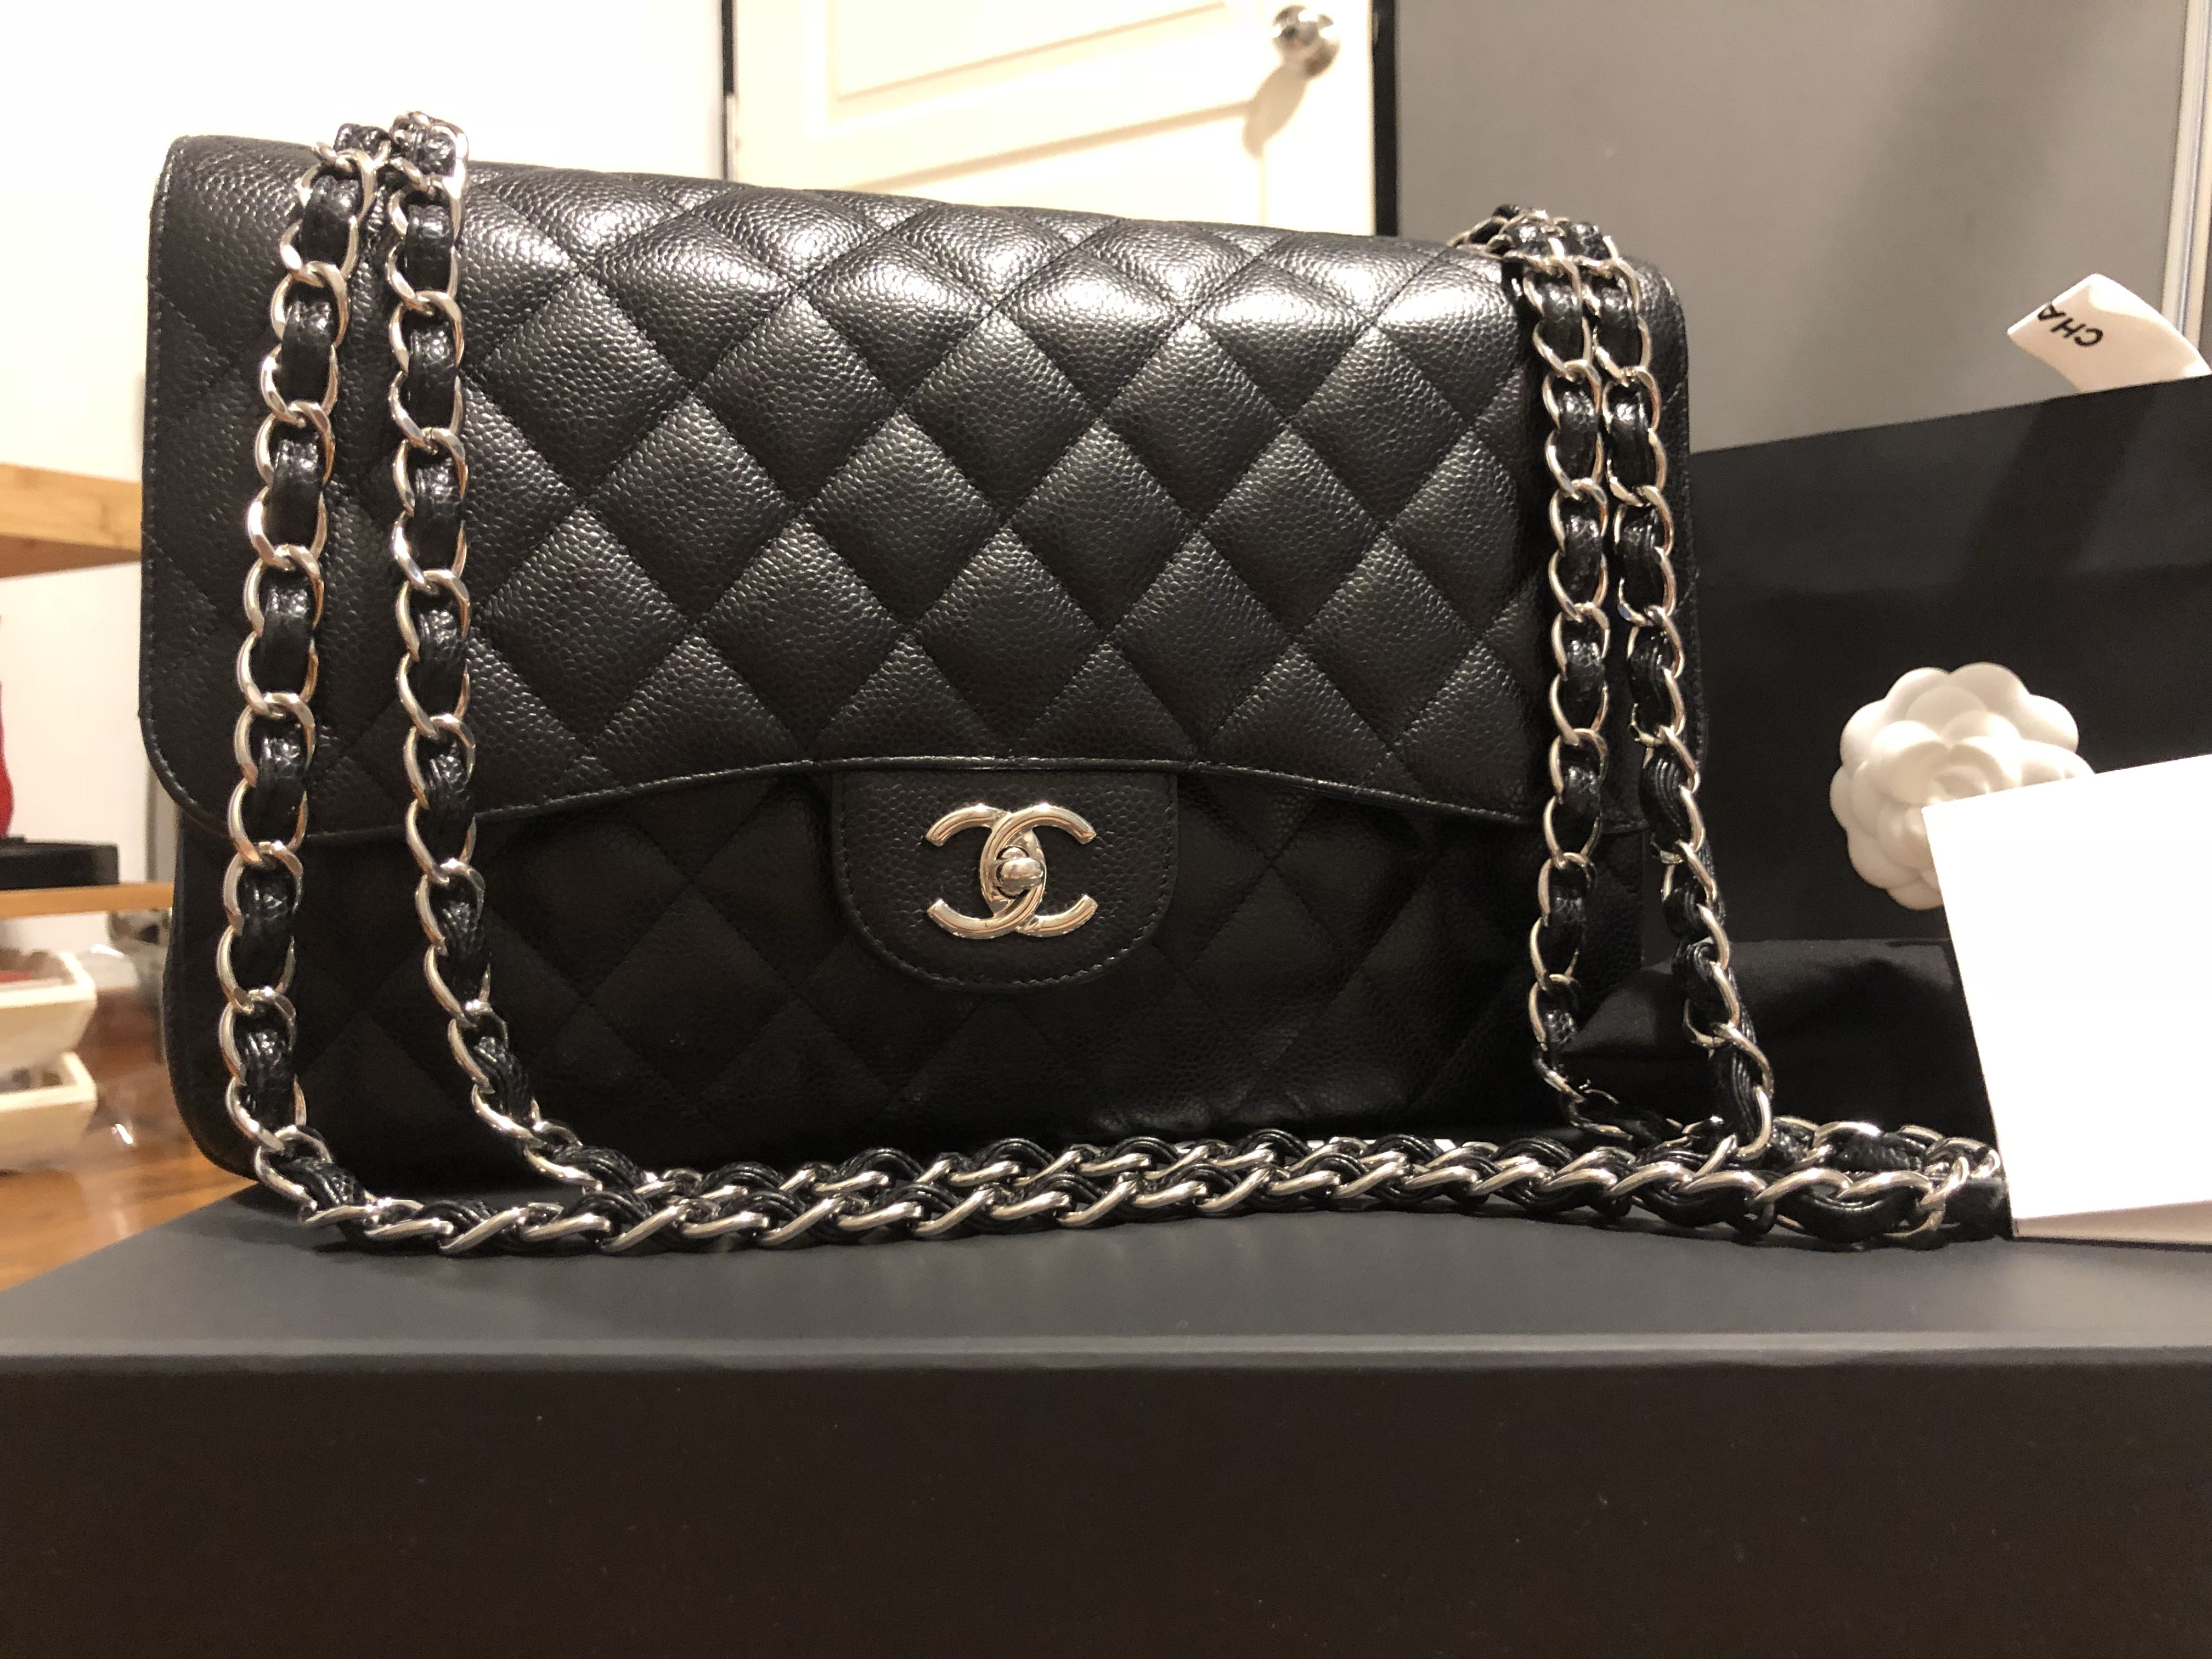 f3e85b9a8400 chanel Jumbo caviar double flap SHW, Luxury, Bags & Wallets, Handbags on  Carousell